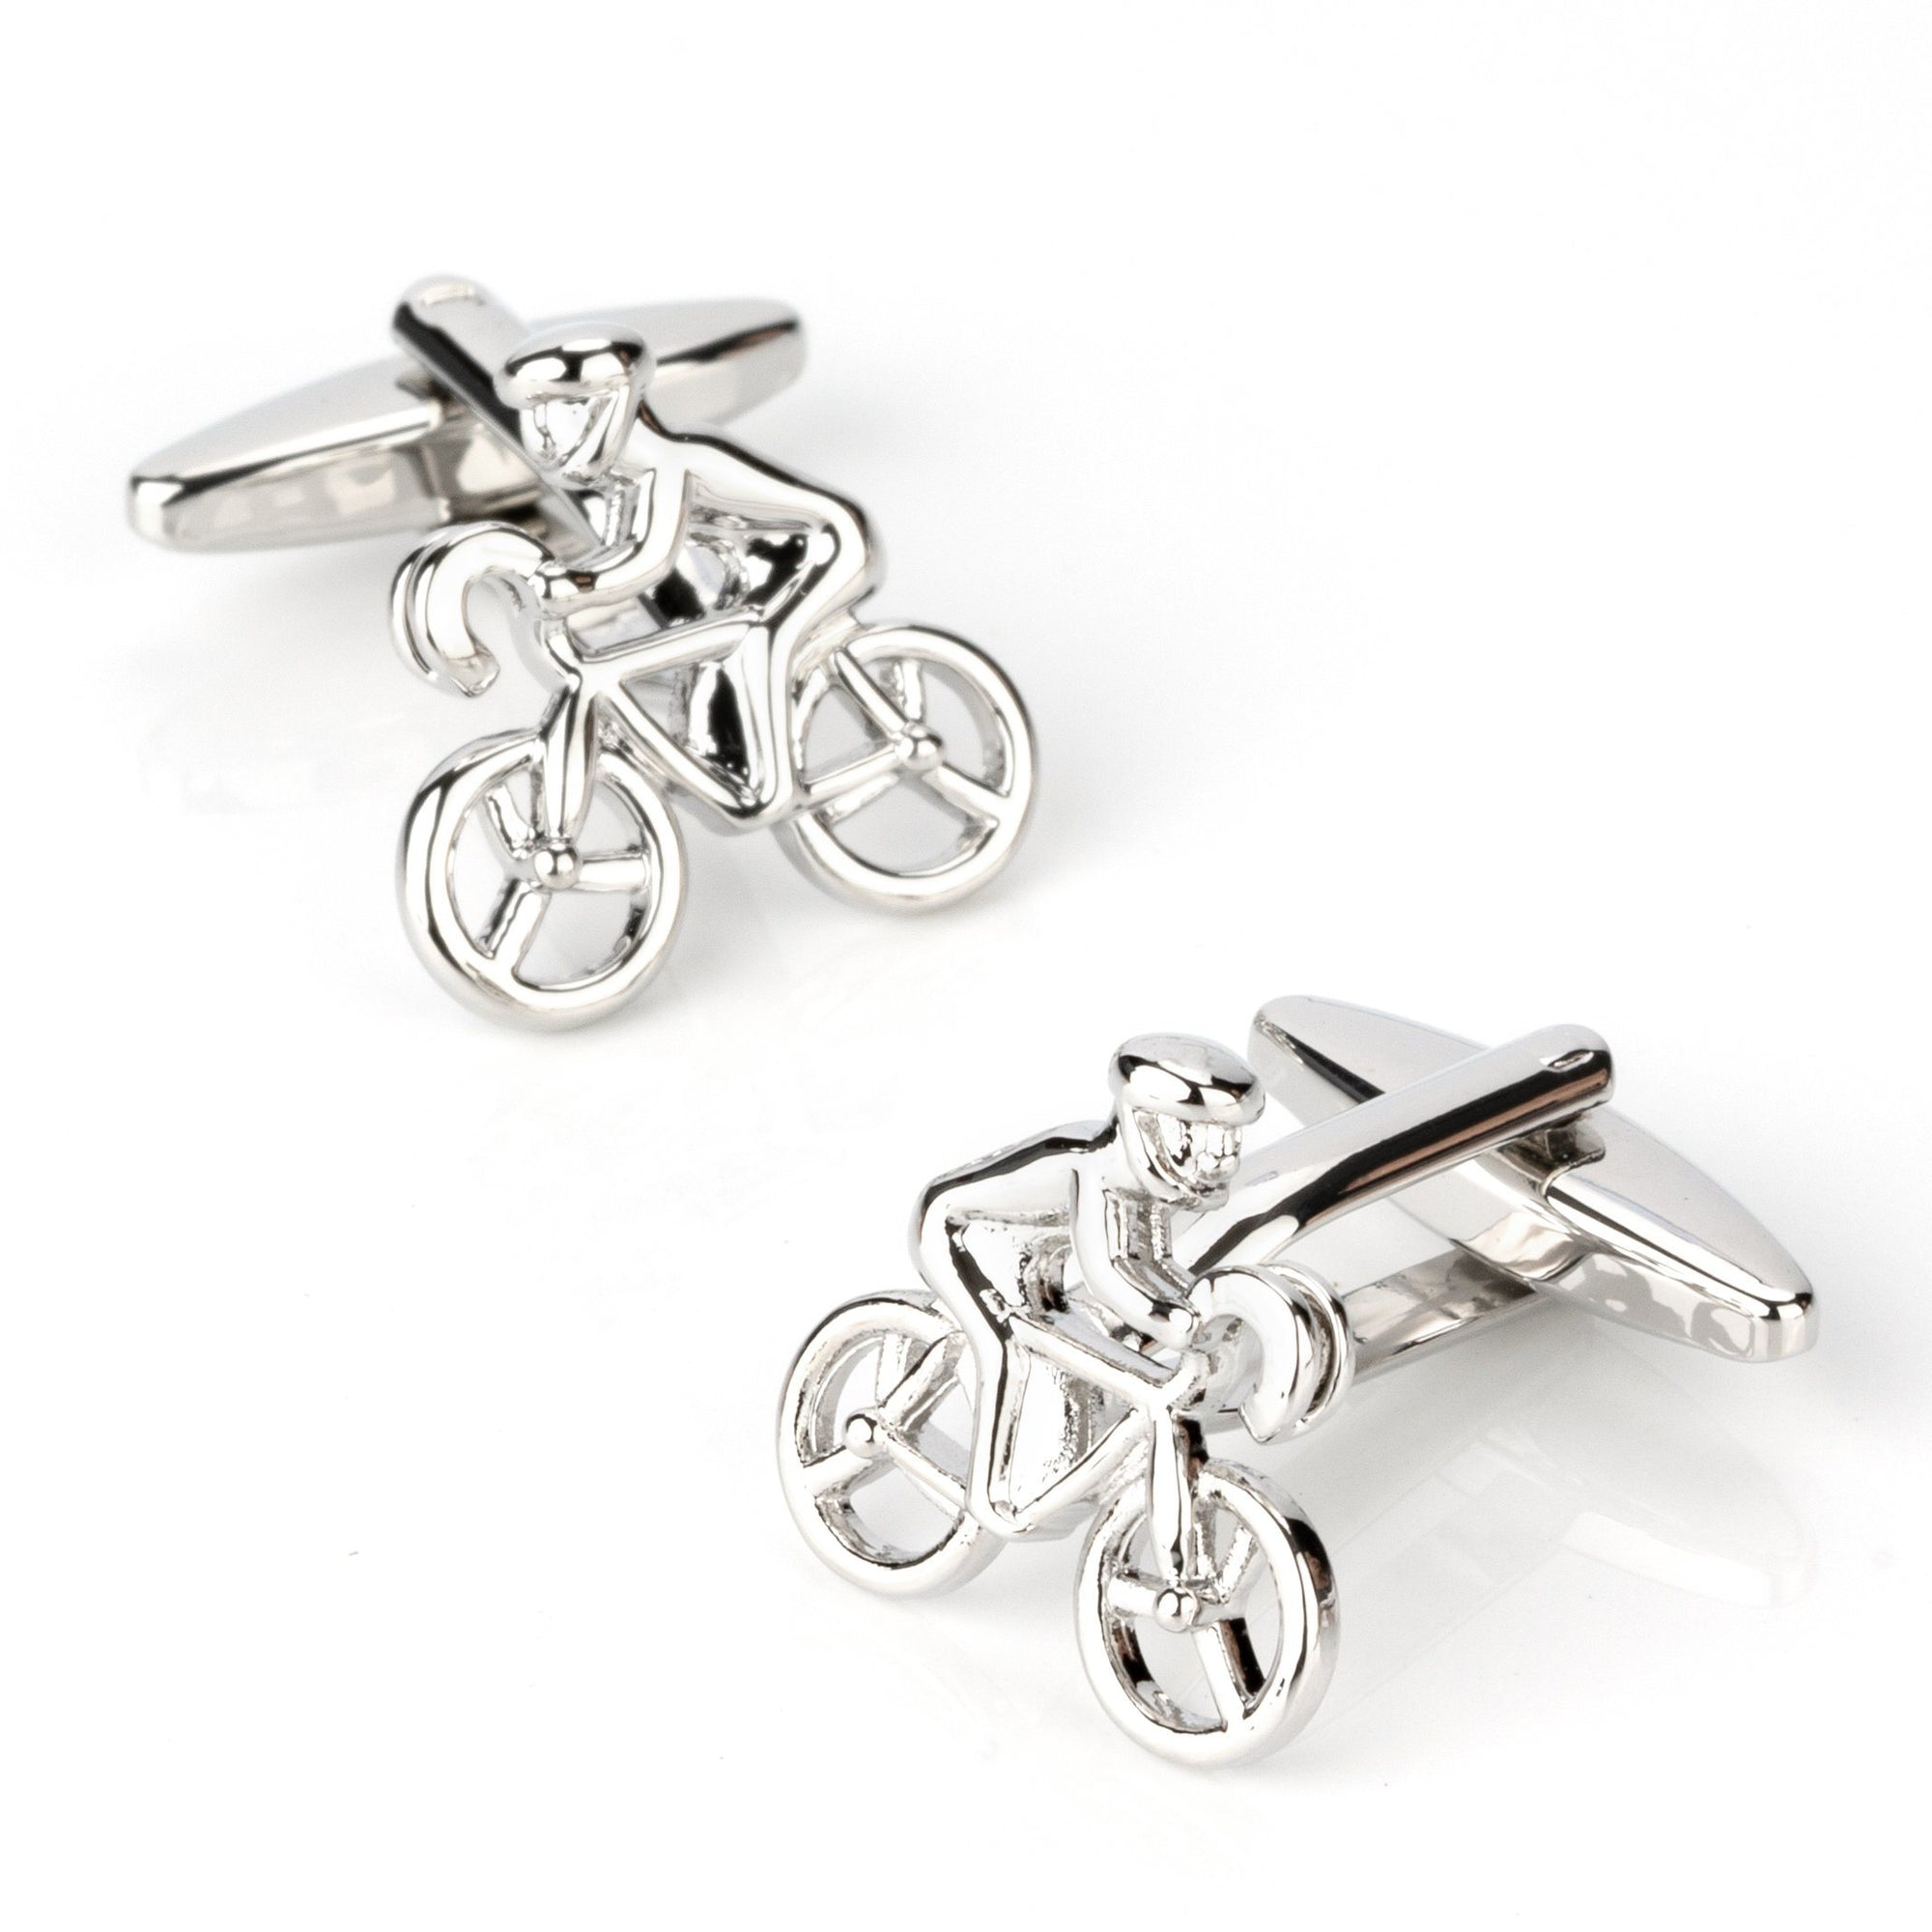 Silver Bicycle Cyclist Cufflinks Novelty Cufflinks Clinks Australia